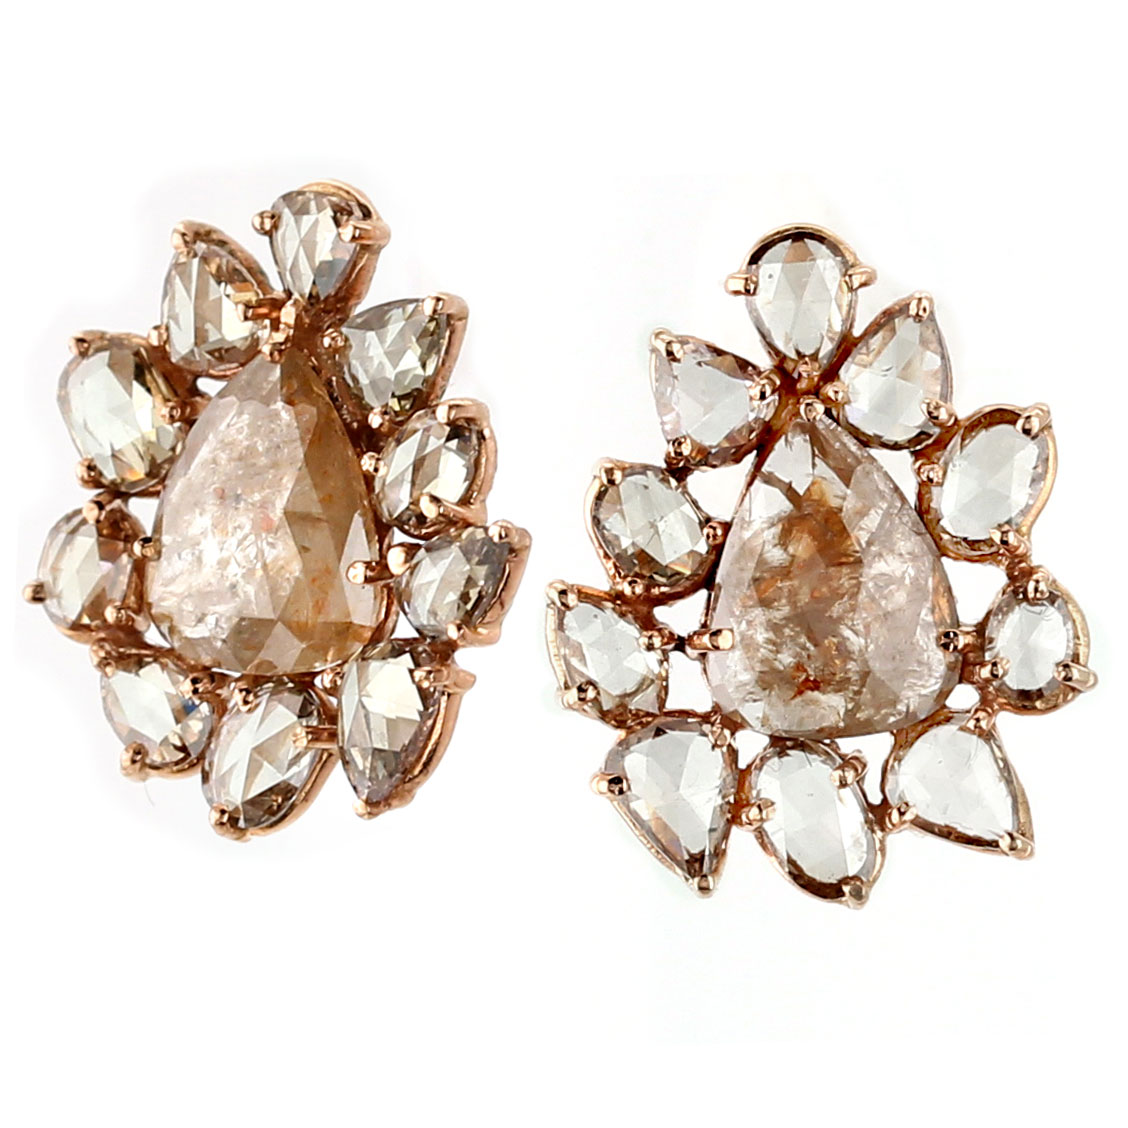 341249-Raw Diamond Earrings